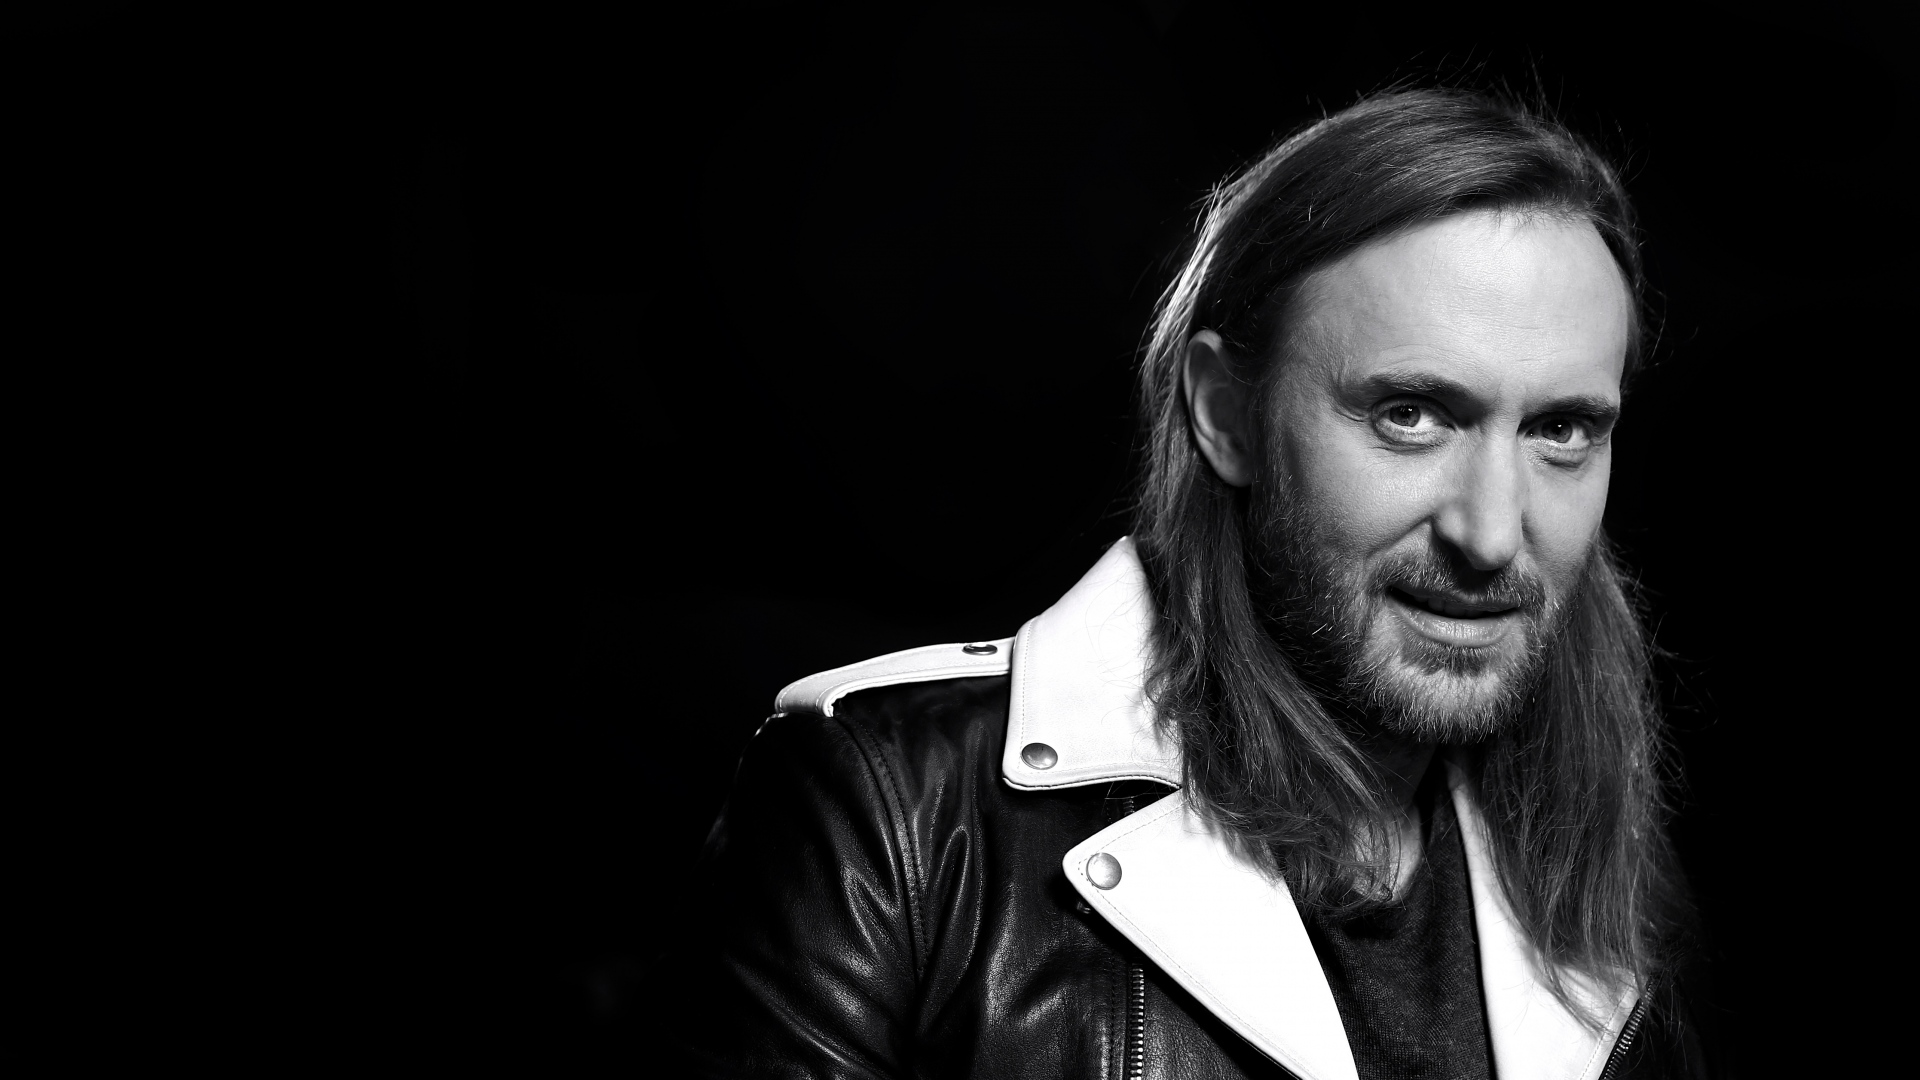 david guetta widescreen computer background 1183